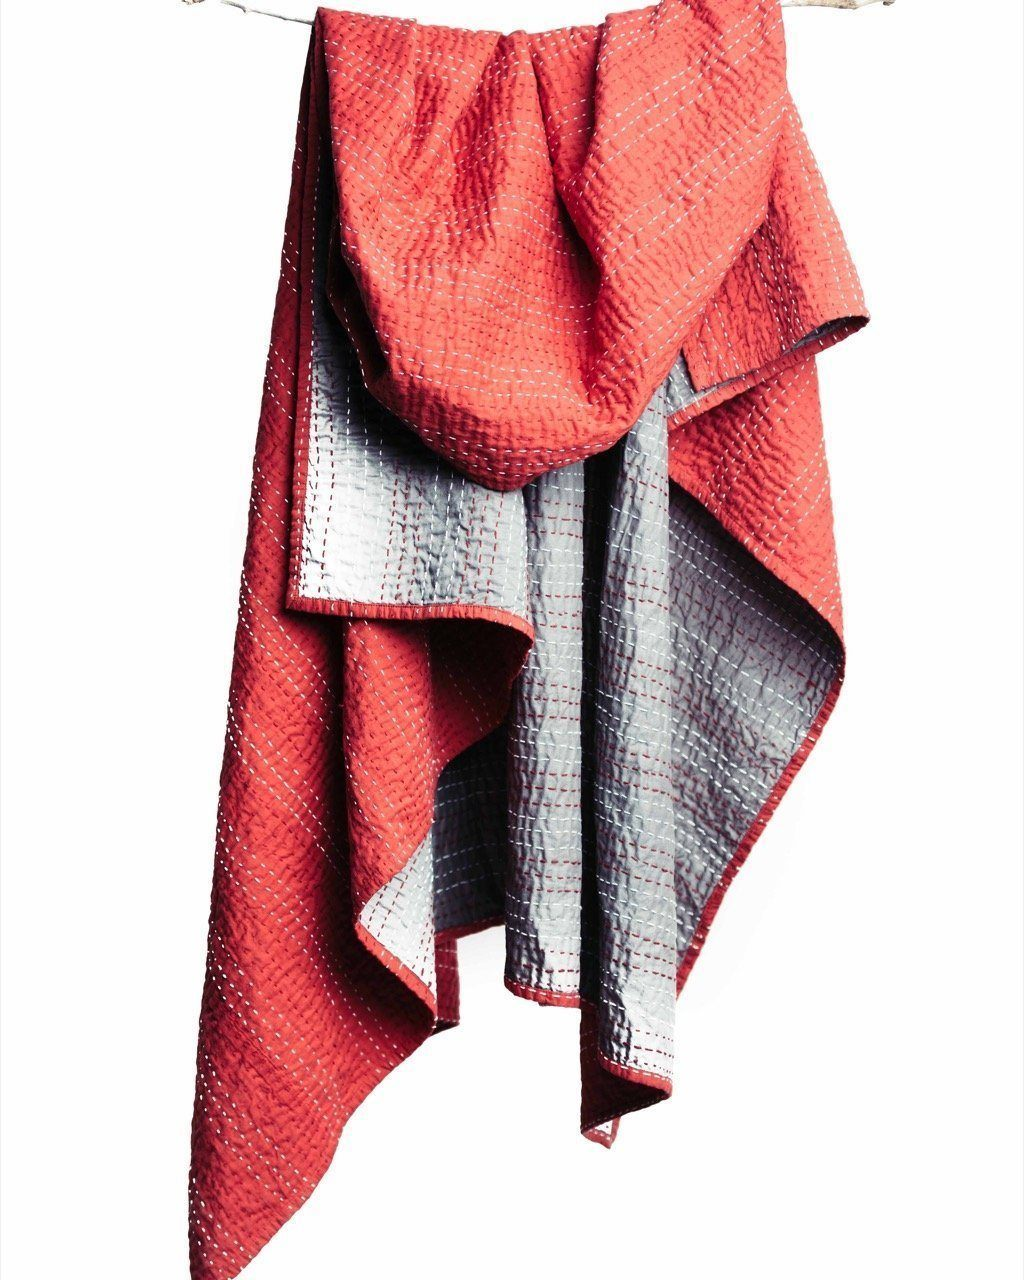 Bloom & Give Barmer Kantha Throw Throws Bloom & Give